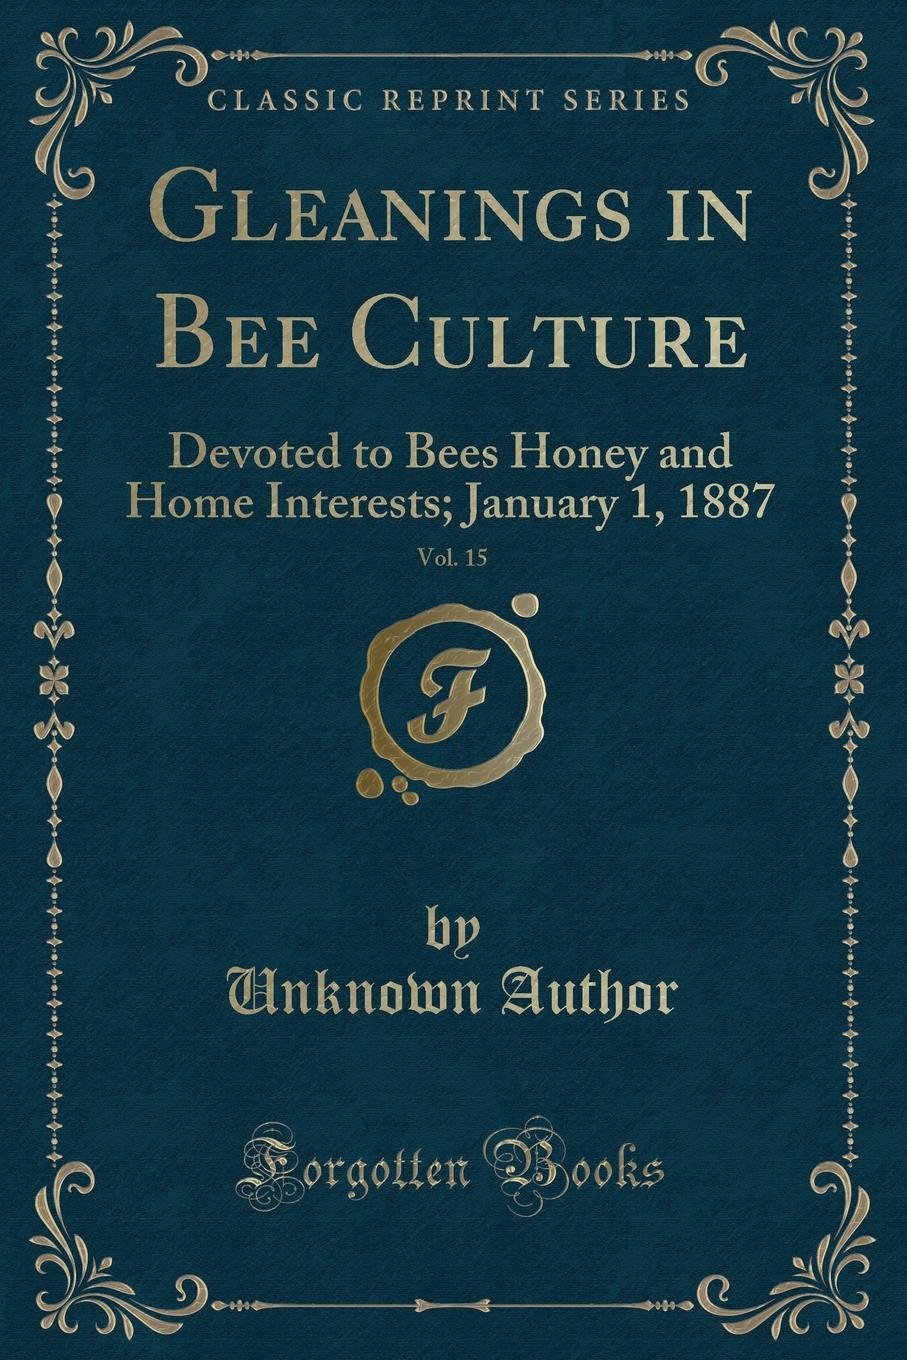 Download Gleanings in Bee Culture, Vol. 15: Devoted to Bees Honey and Home Interests; January 1, 1887 (Classic Reprint) ebook